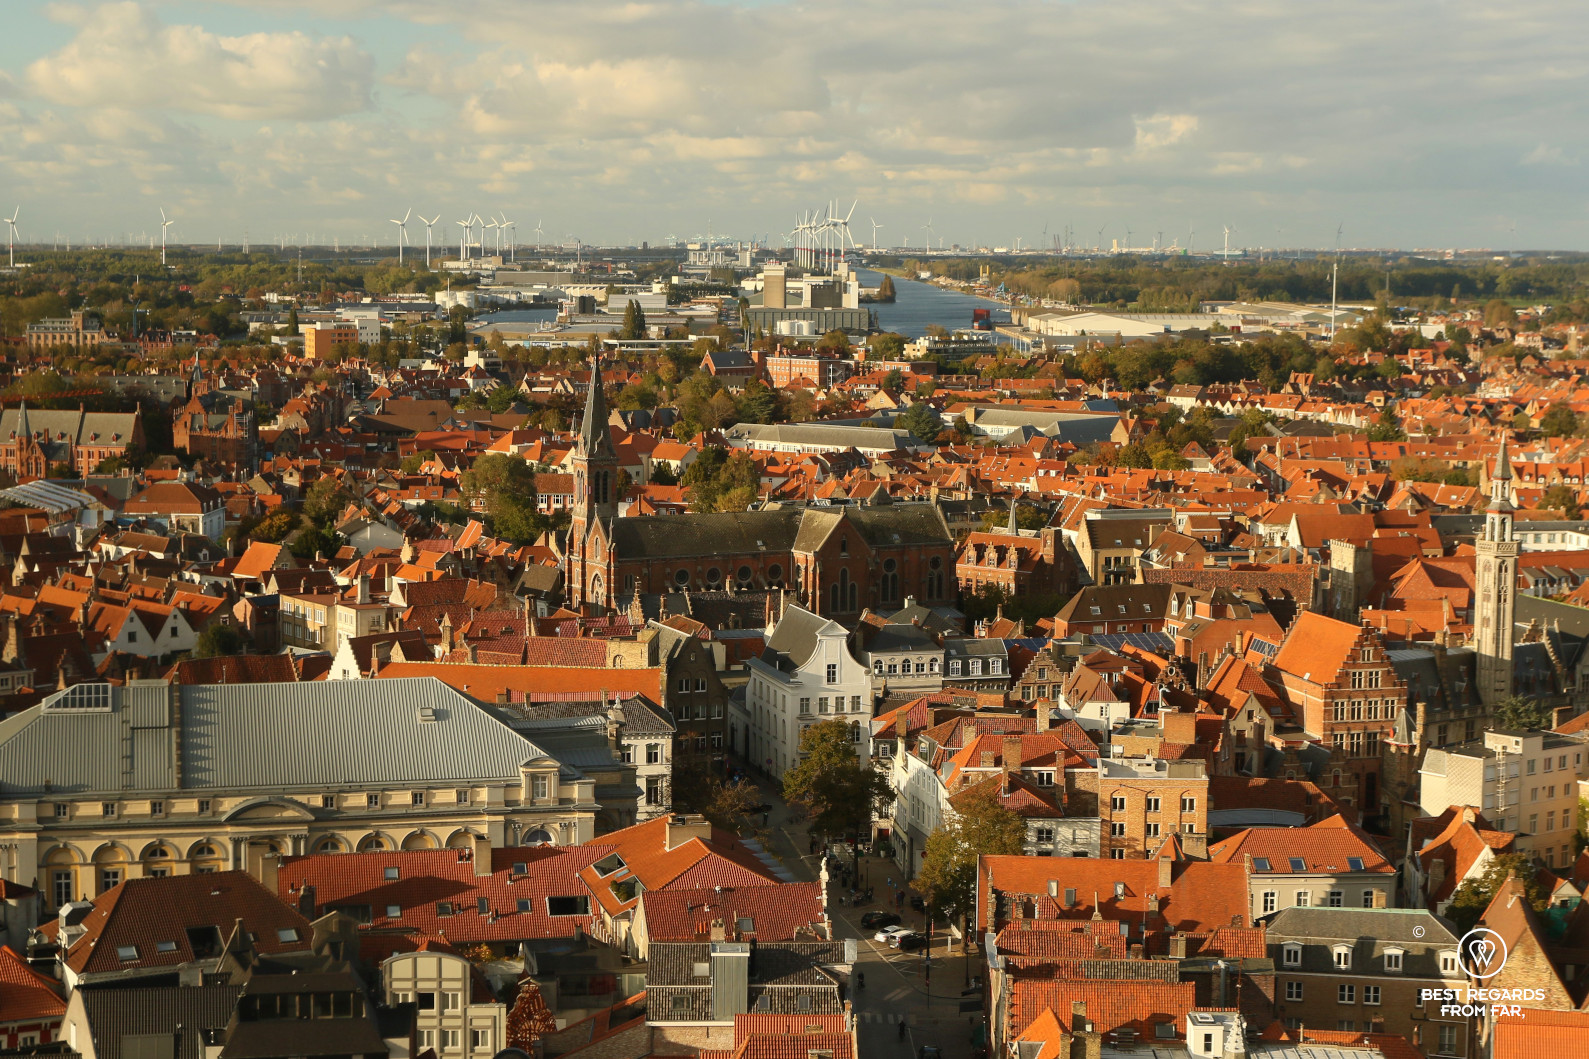 View on the harbour of Zeebrugge in the distance, Bruges, Belgium